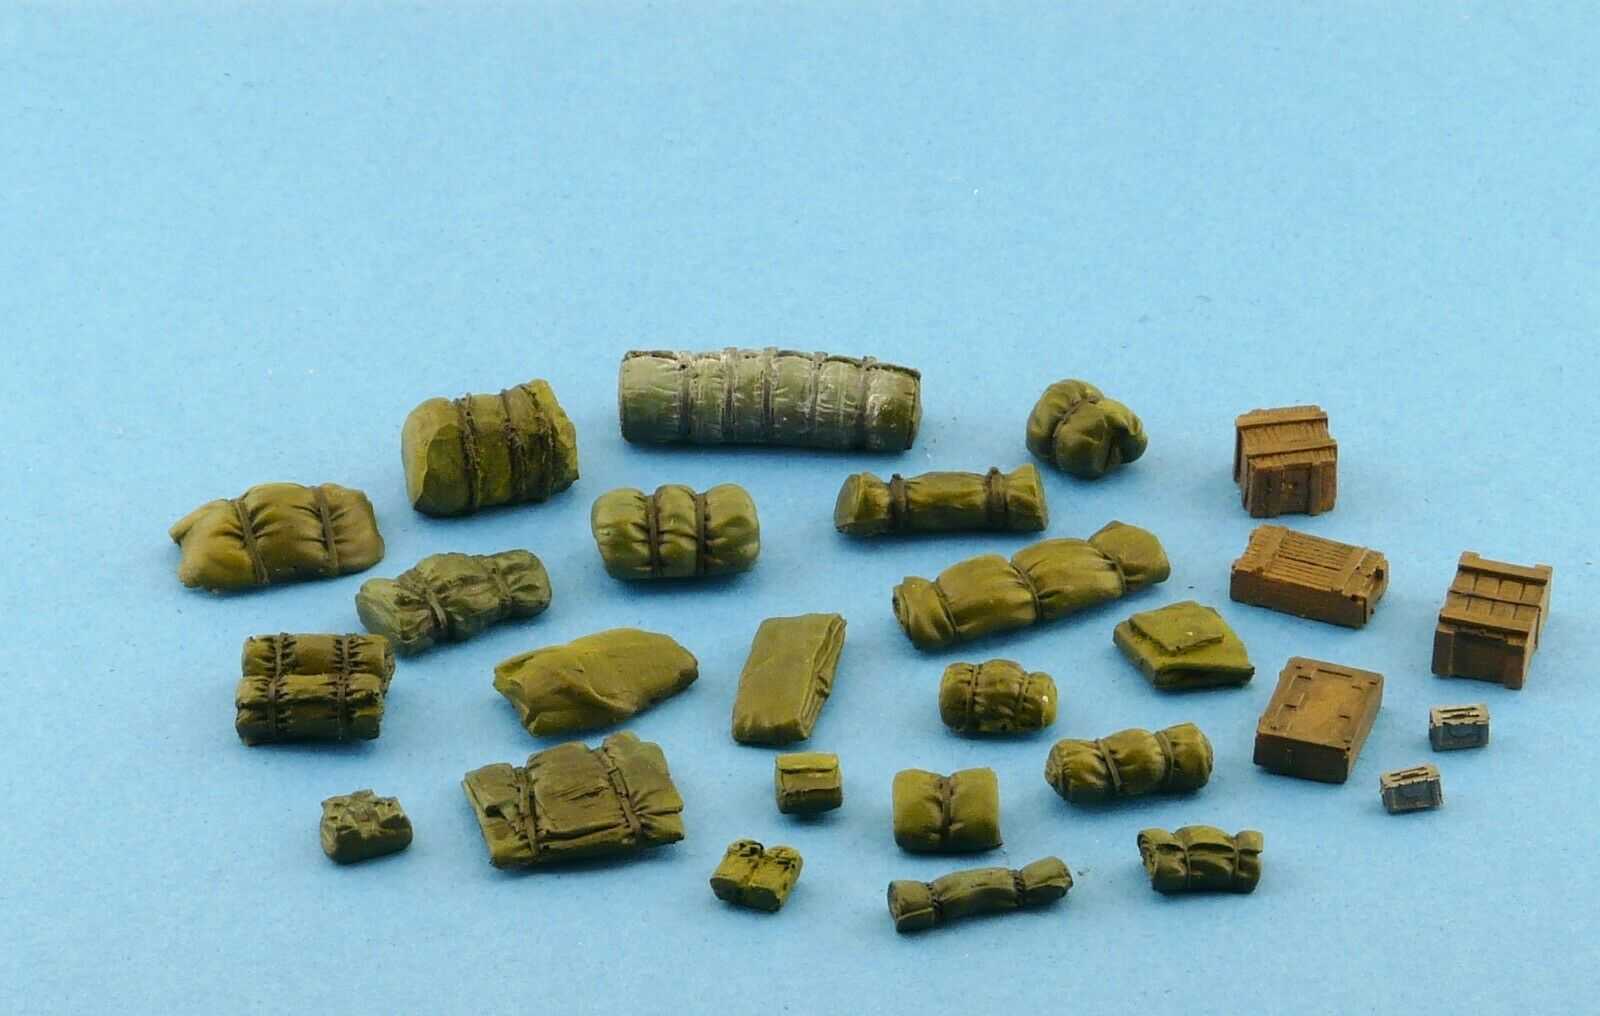 1/48 Military Scale Modelling Resin Stowage  Diorama Accessories  Kit 3 - redoguk